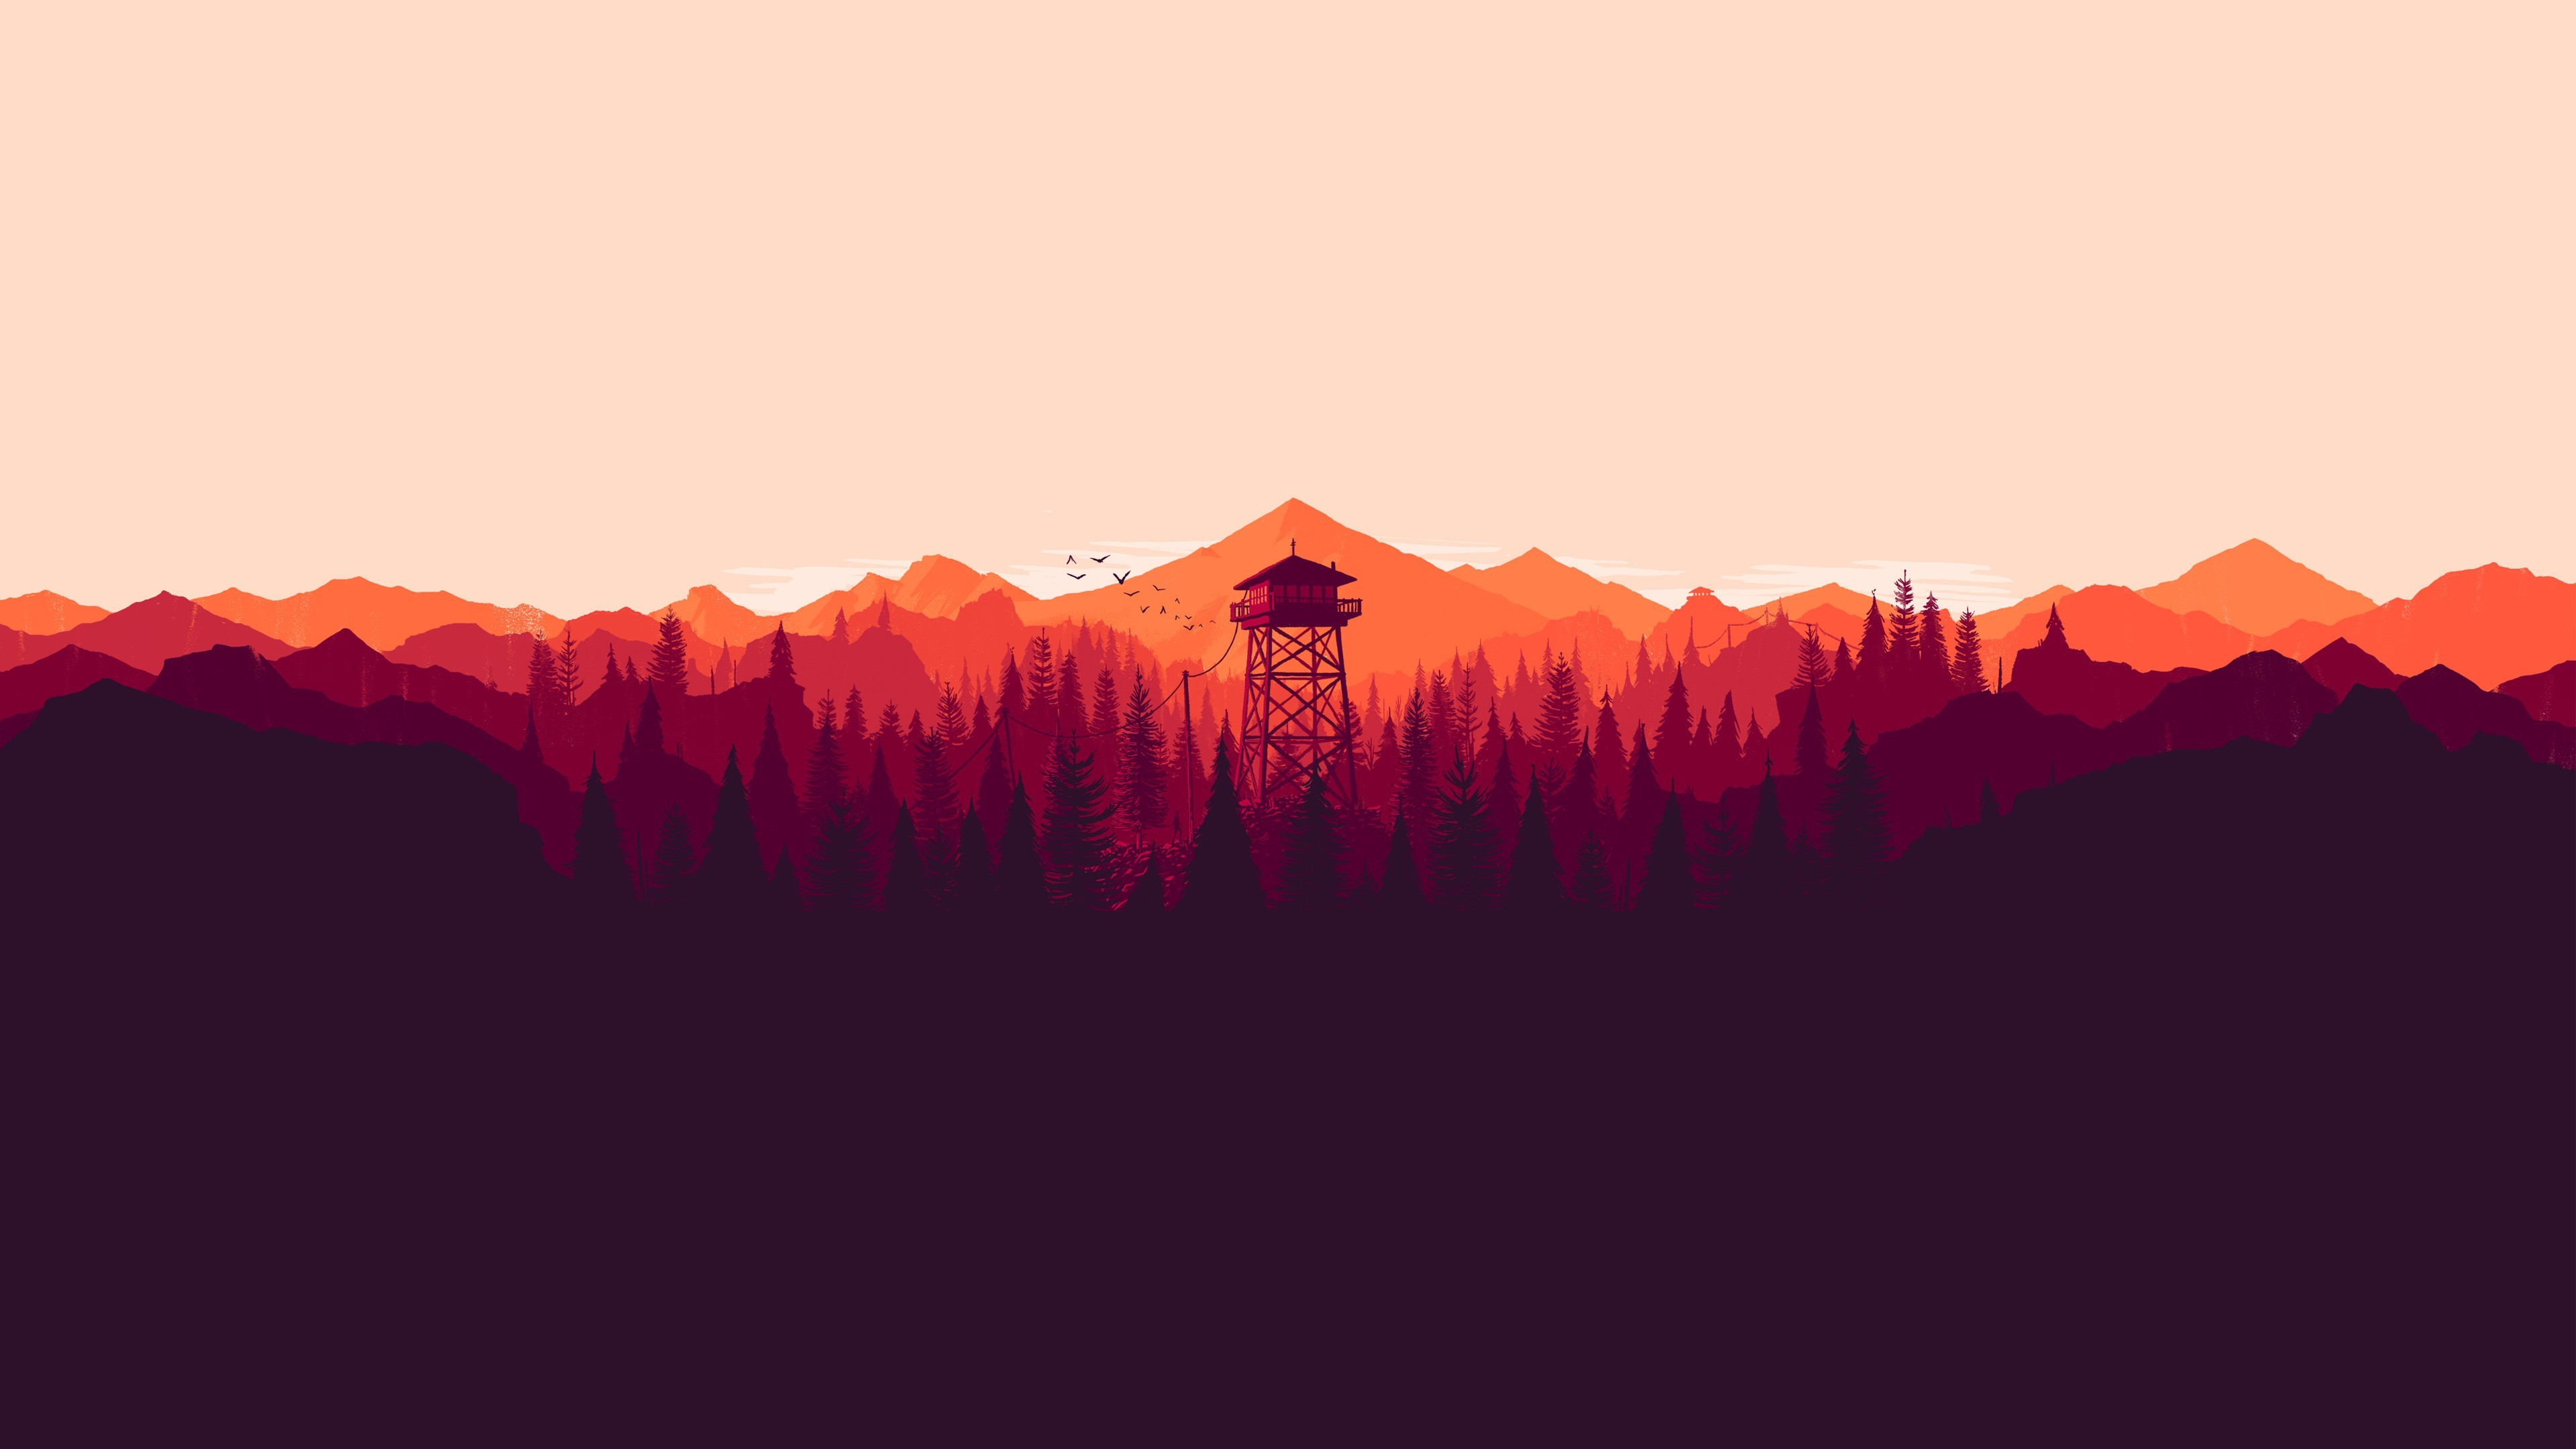 Moving Wallpapers For Girls Artwork Landscape Firewatch Video Games Wallpapers Hd